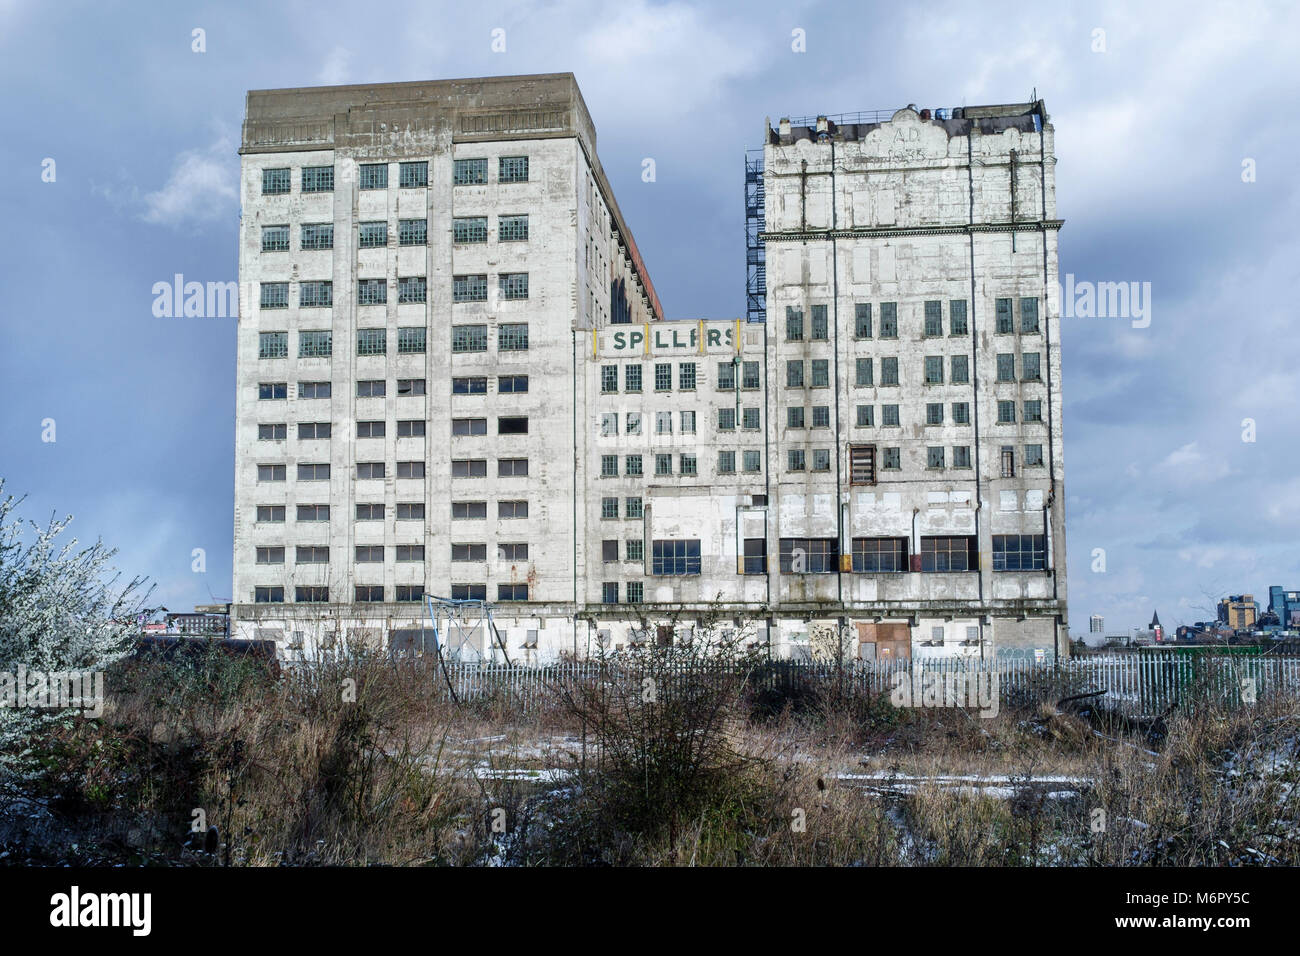 The derelict building of Millennium Mills, Silvertown, London Docklands, UK - Stock Image